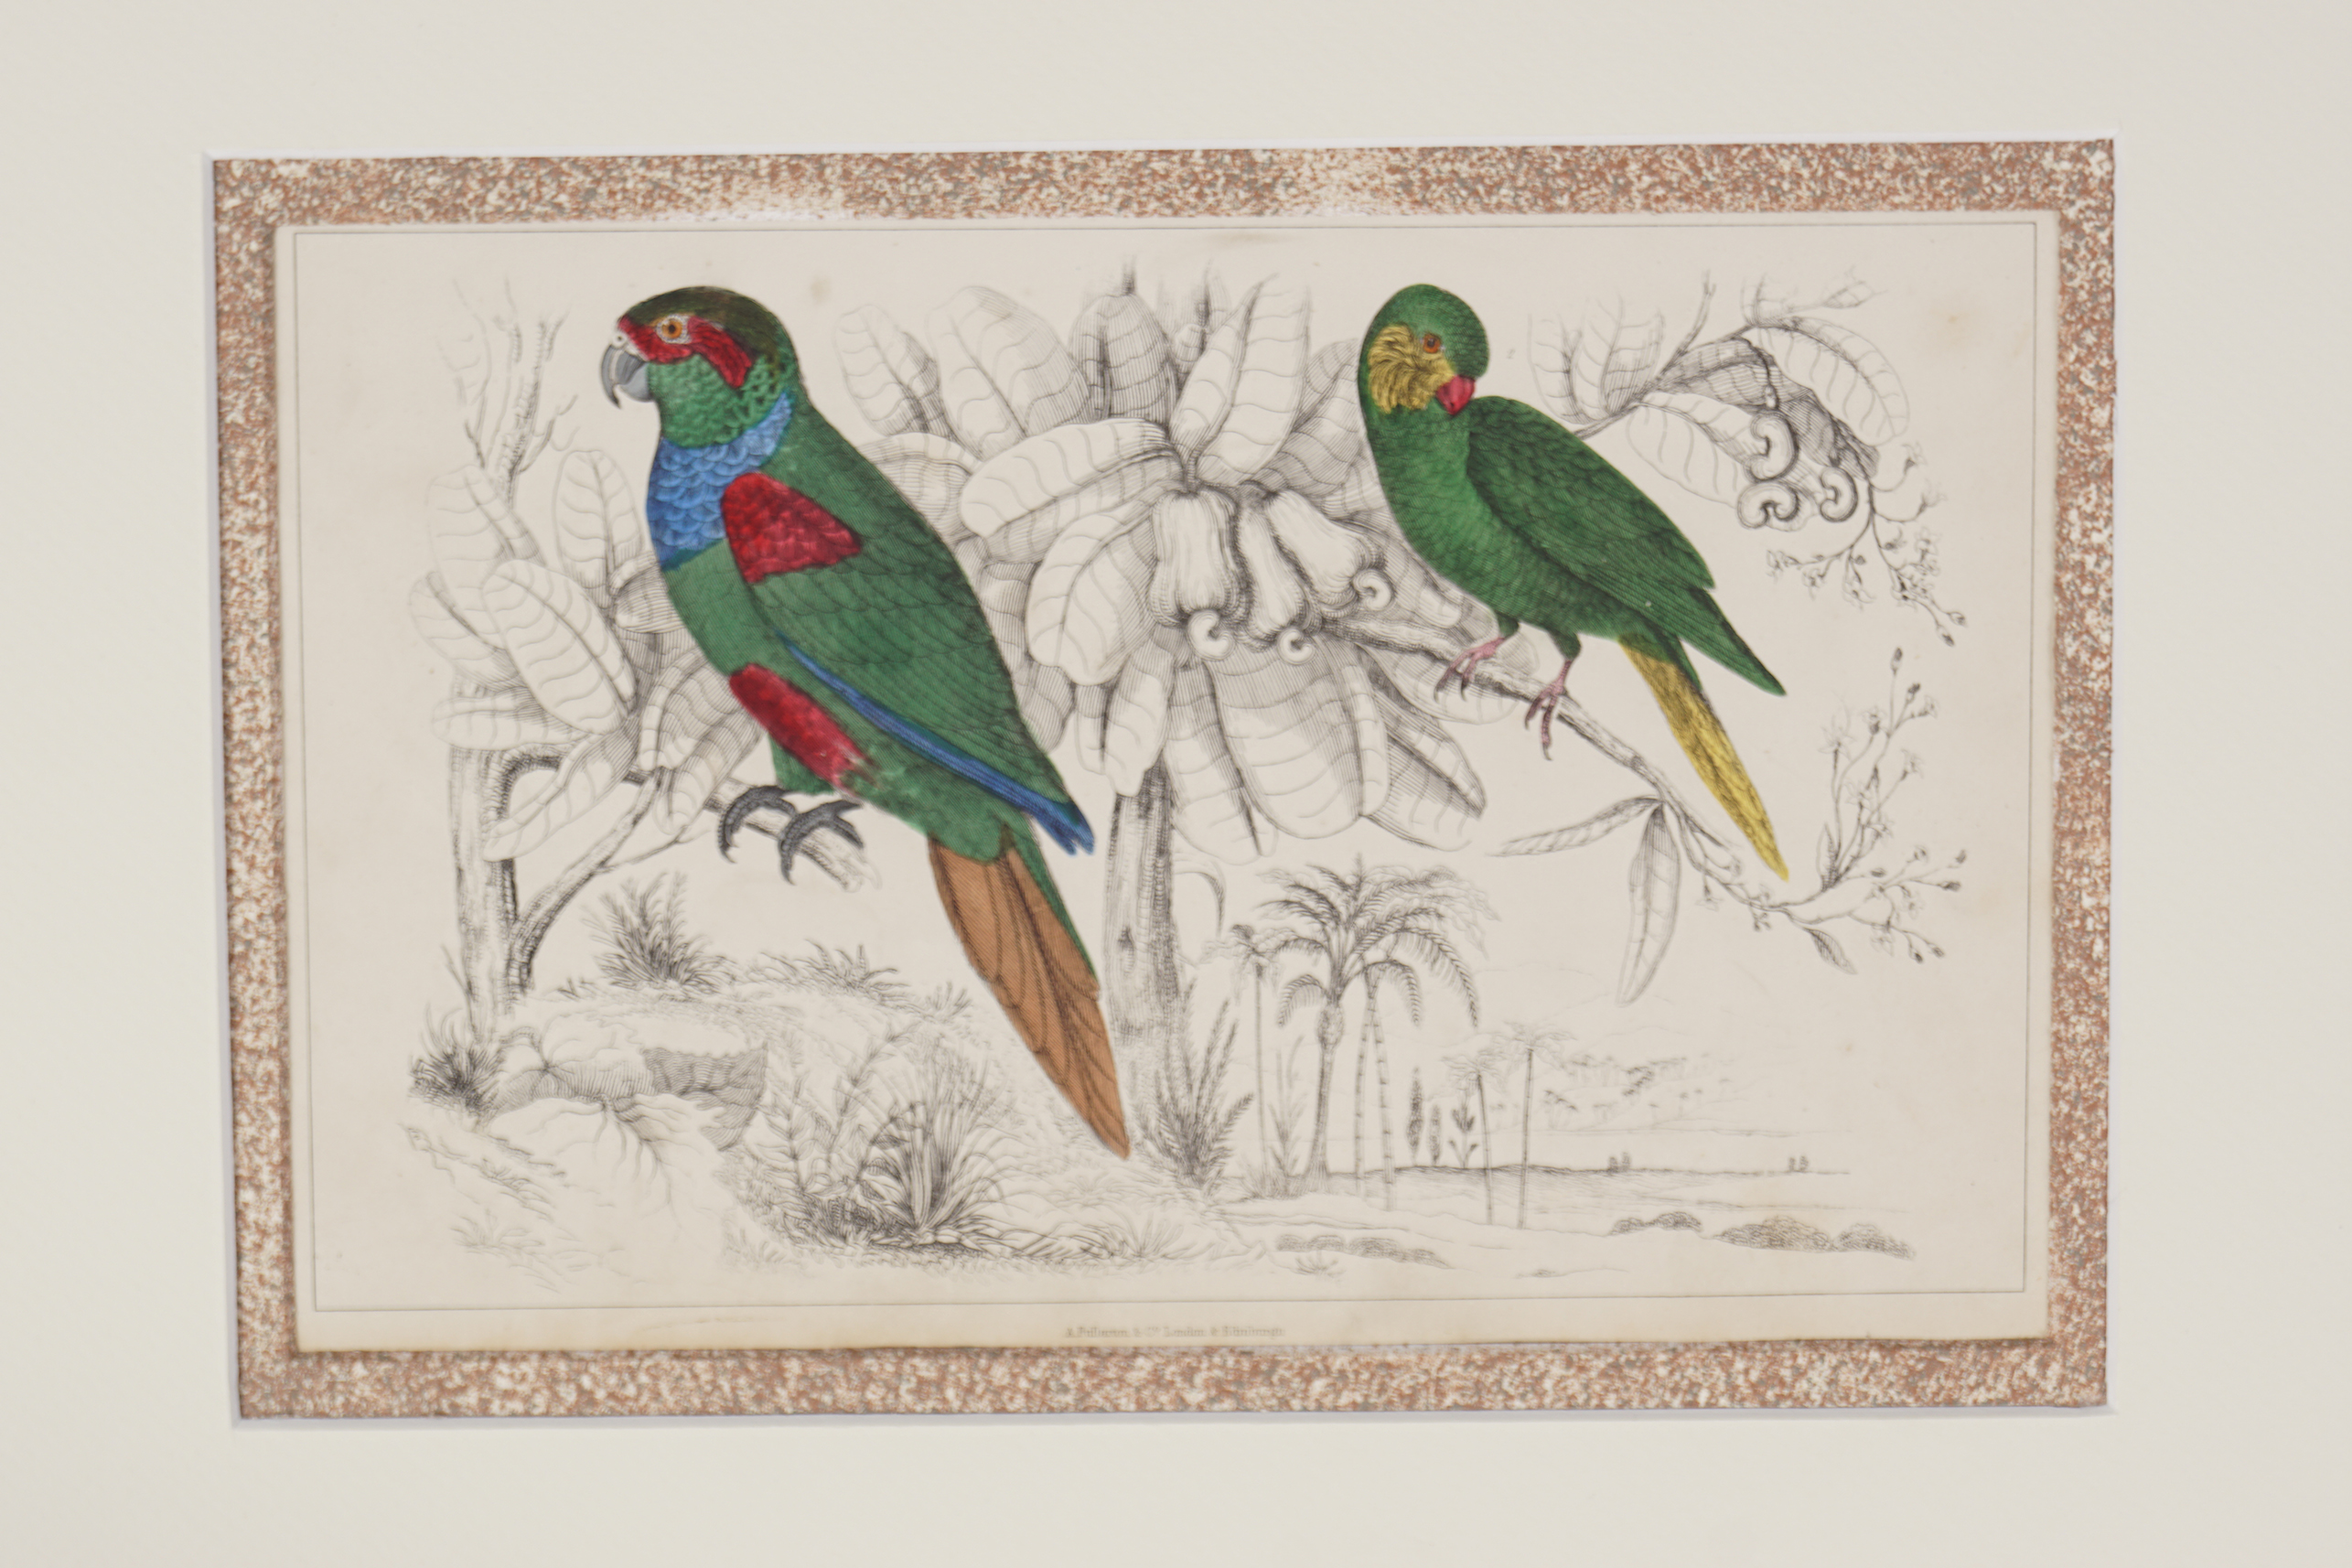 SET OF 4 18TH-CENTURY HAND COLOURED PRINTS - Image 2 of 5